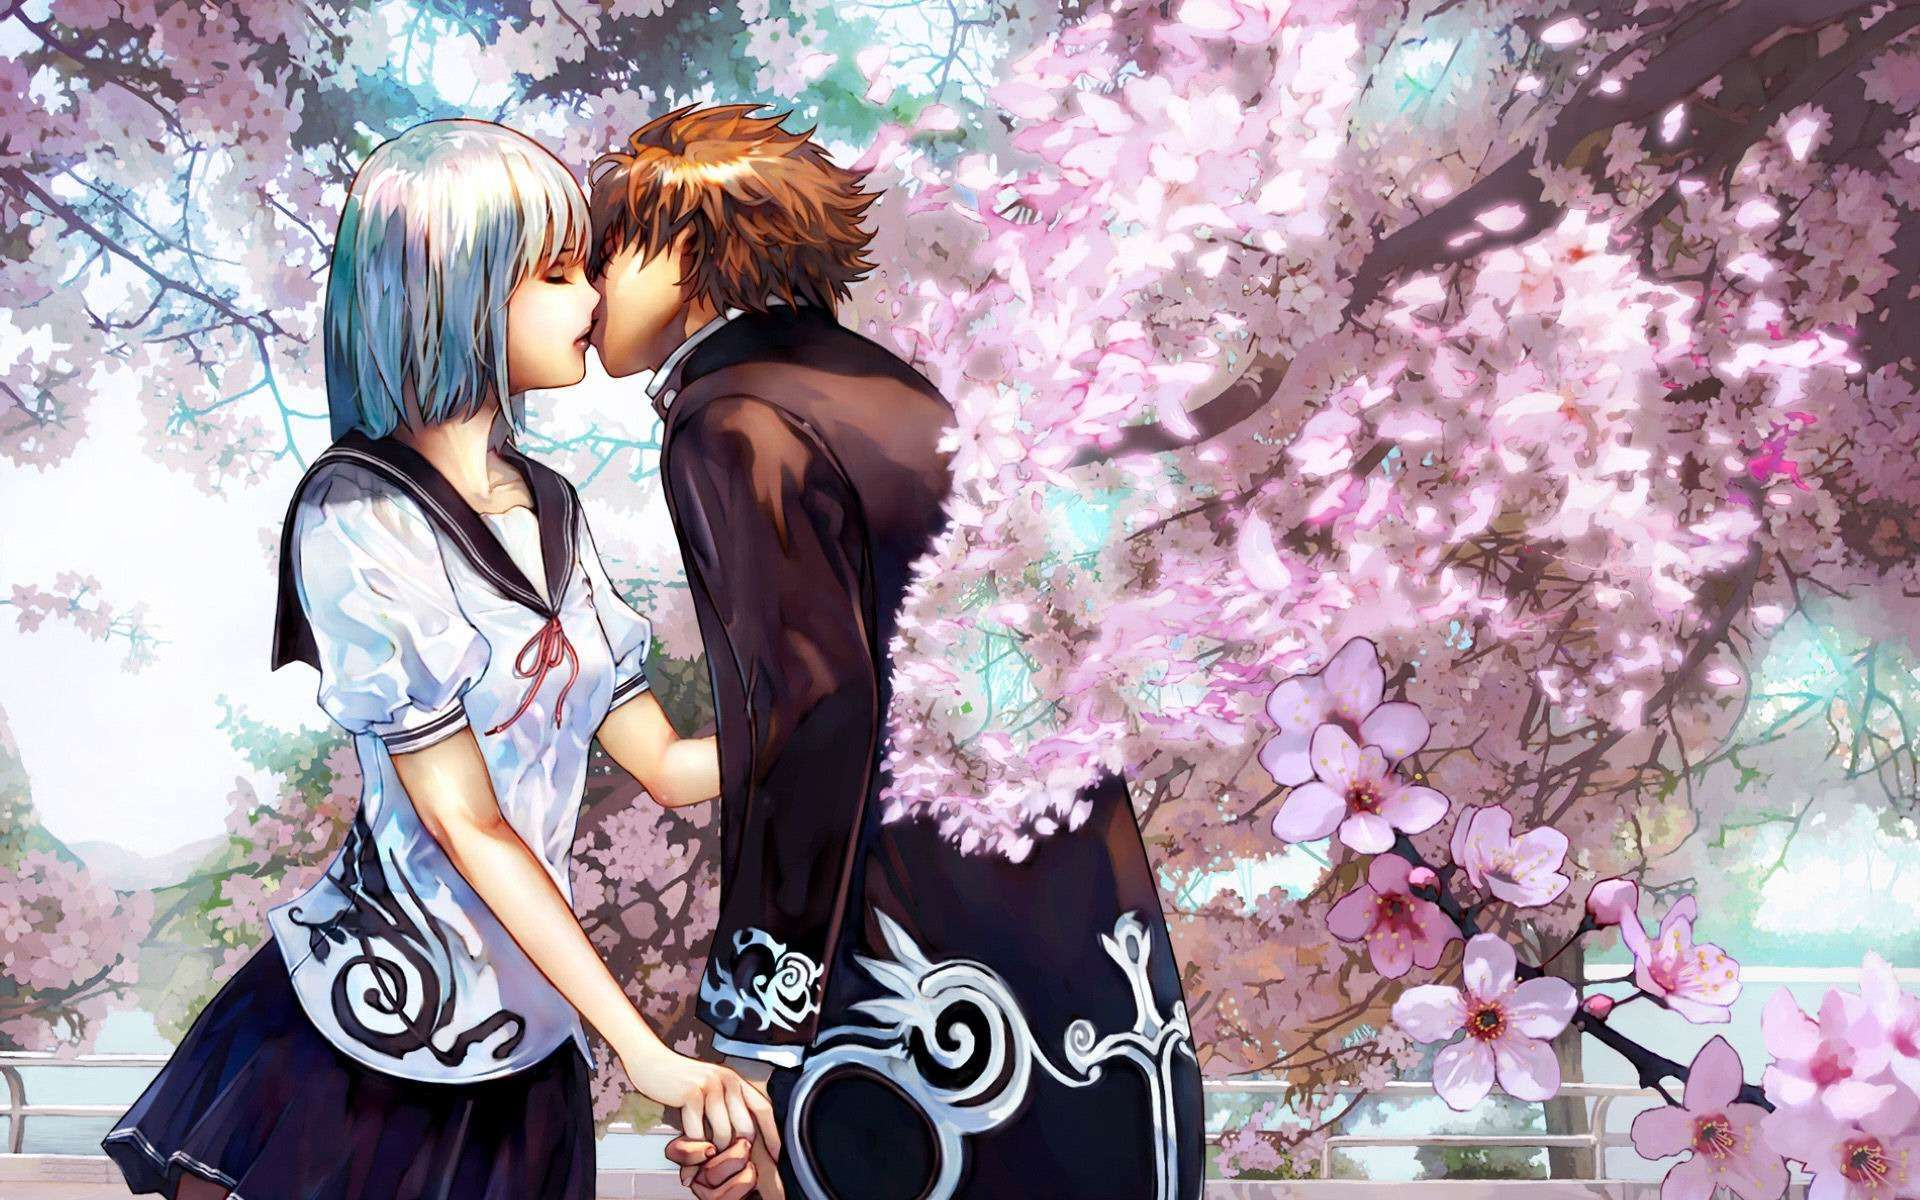 HD Cute Anime Couple Backgrounds 1920x1200